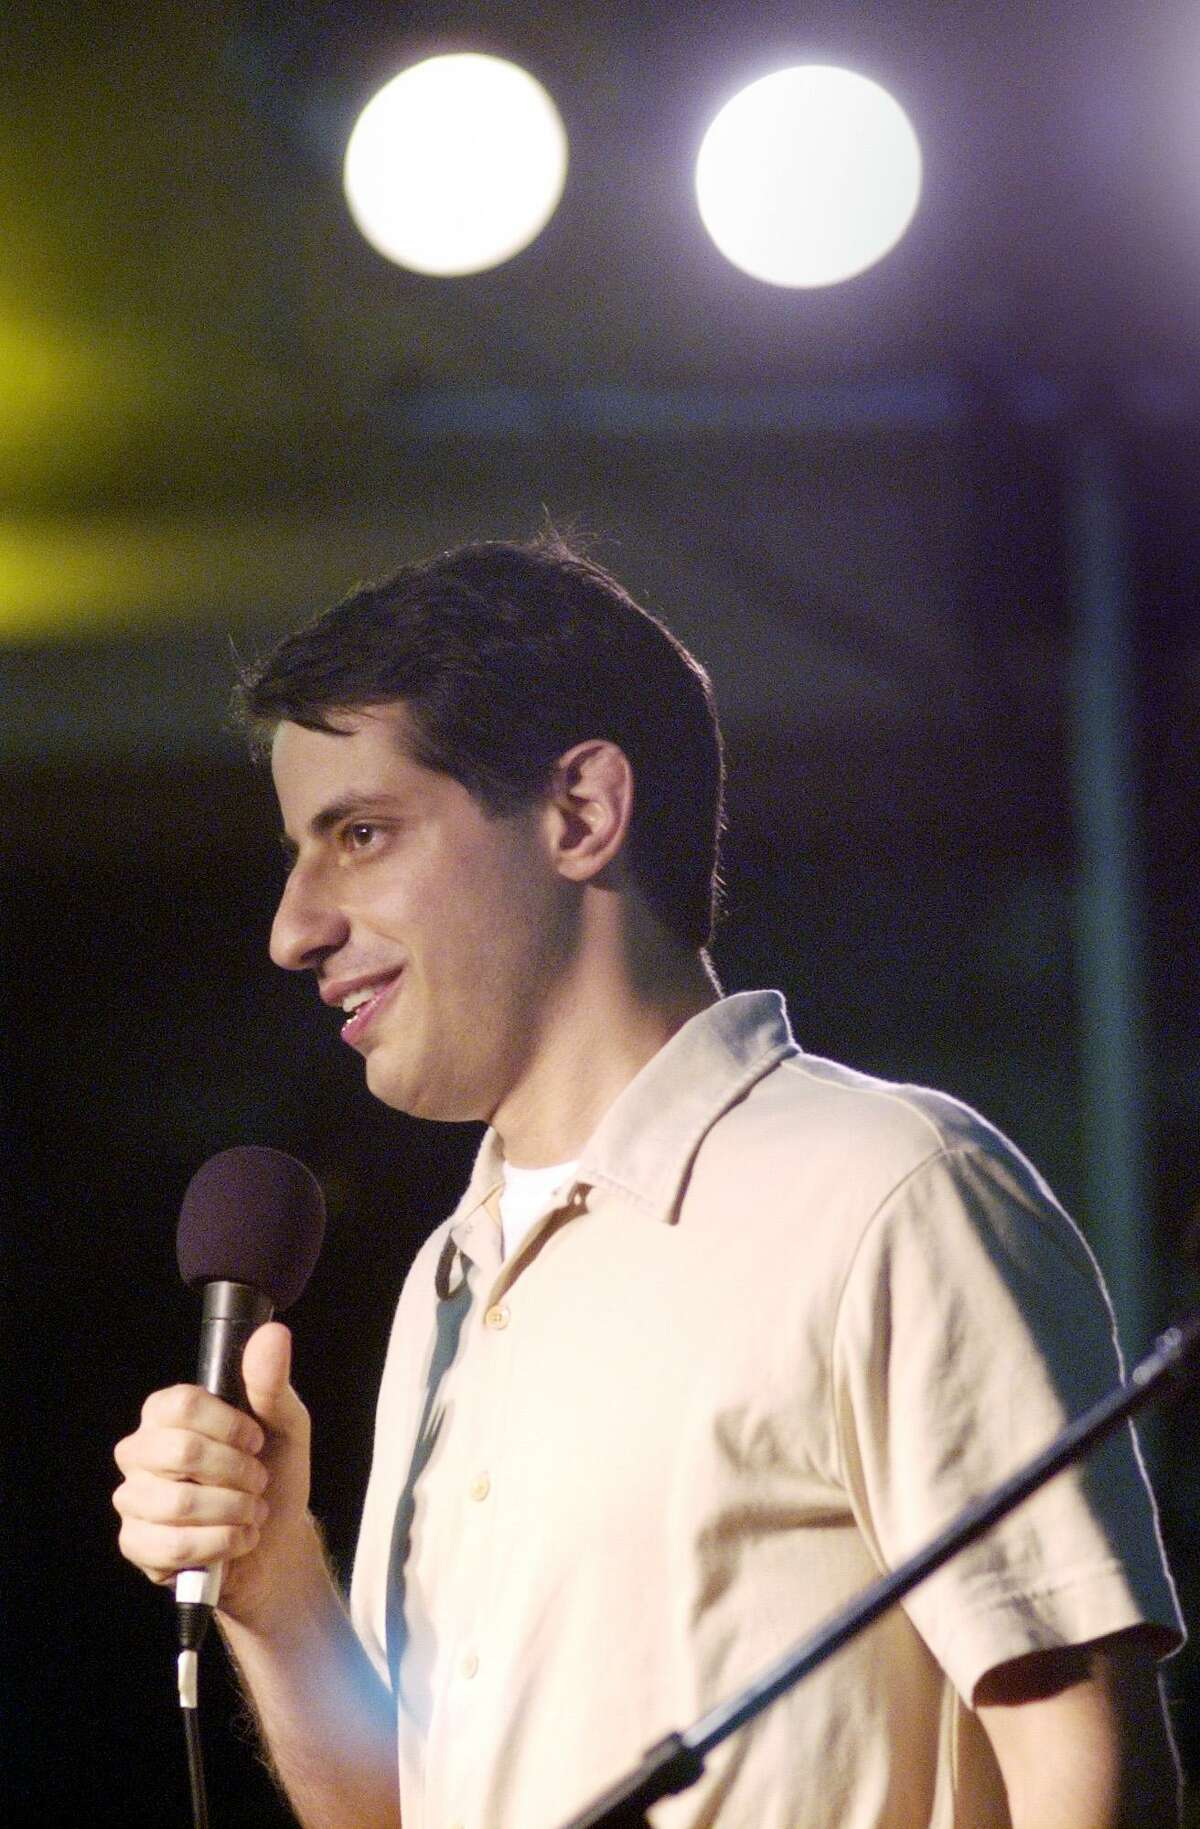 Stamford native Dan Naturman will perform at Back East Brewing in Bloomfield Oct. 24.